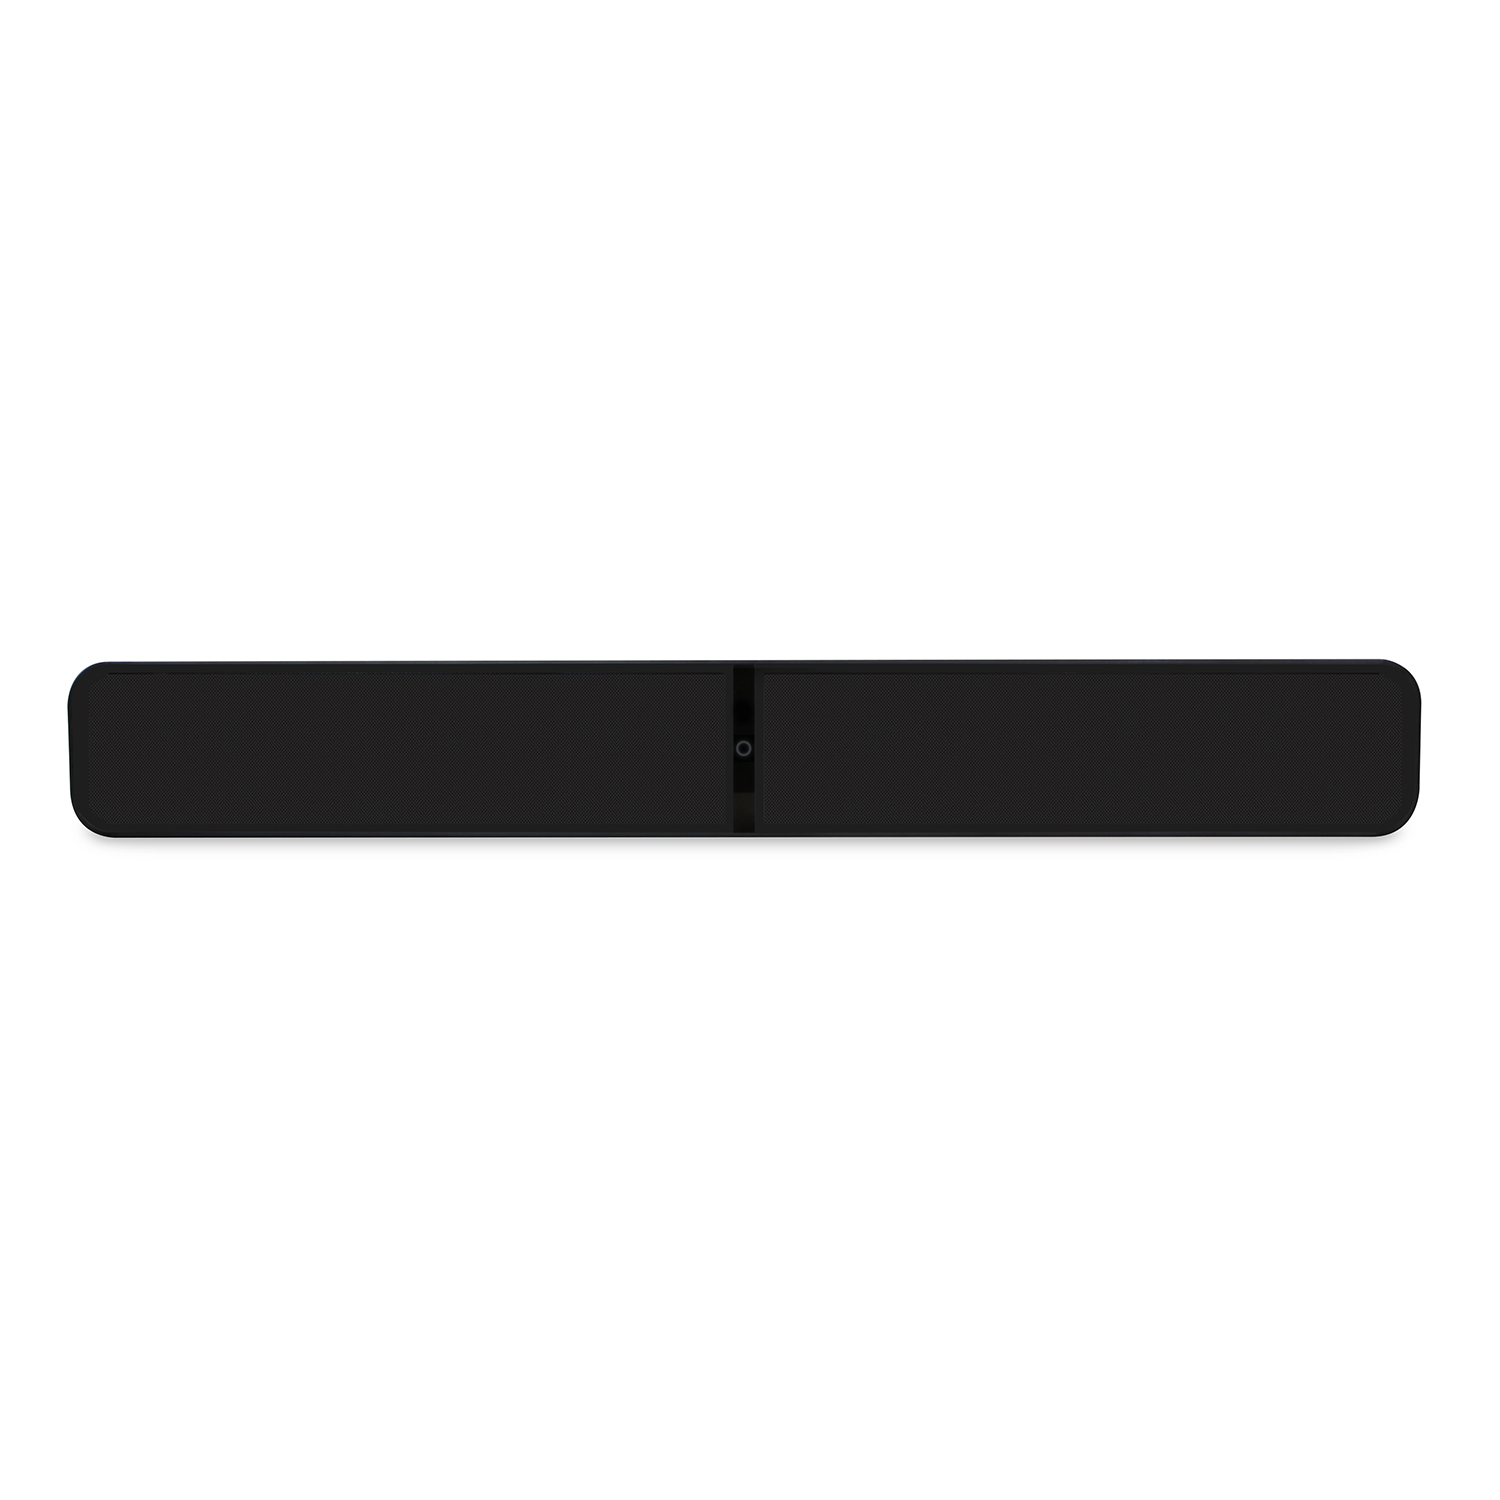 Bluesound Pulse Soundbar 2i Wireless Sound System - Black